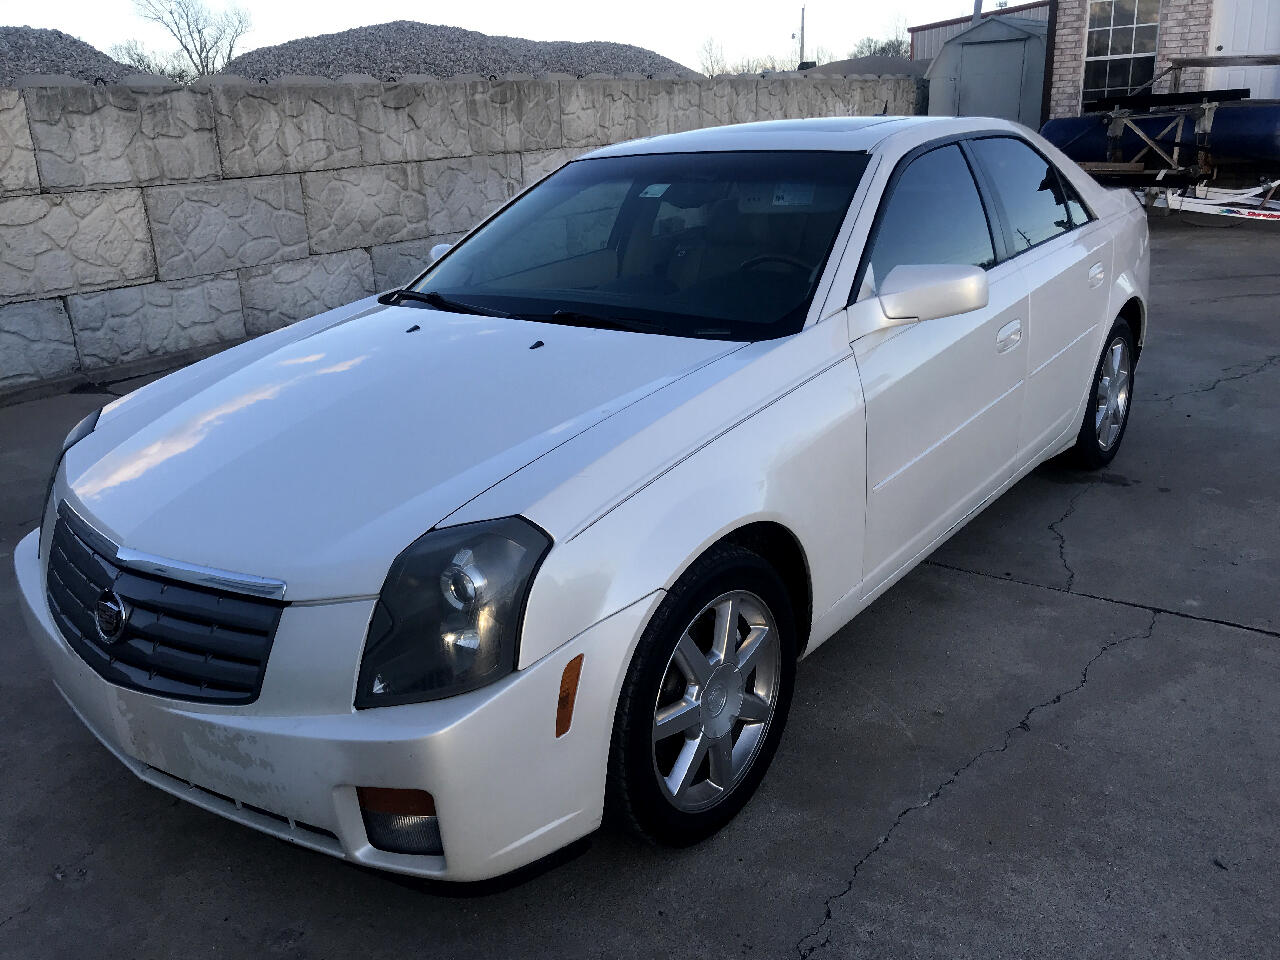 2005 Cadillac CTS 3.6L Performance AWD